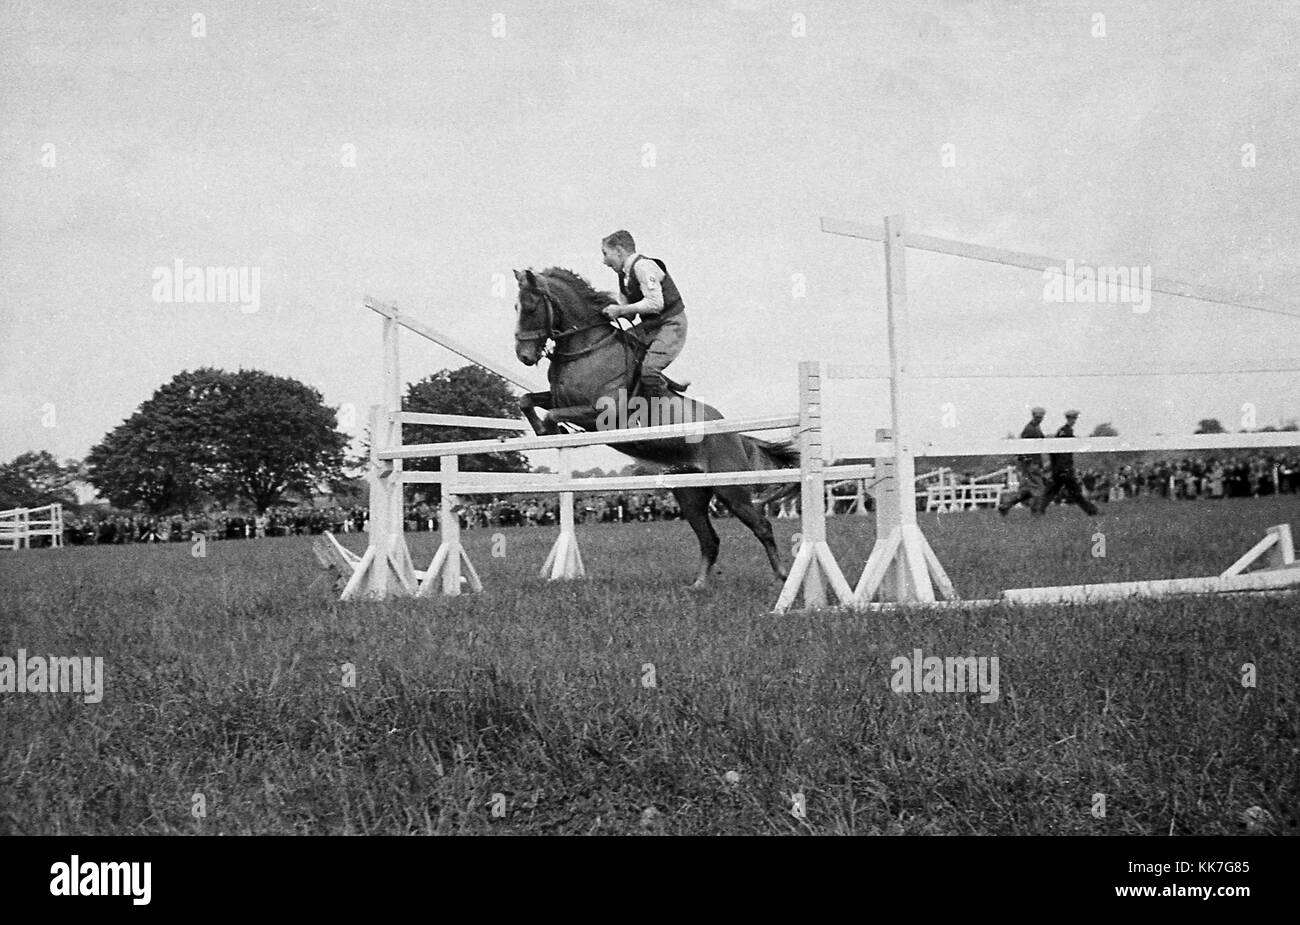 1940s, historical picture, eventing competition, a boy riding a horse without any protective headgear attempting - Stock Image